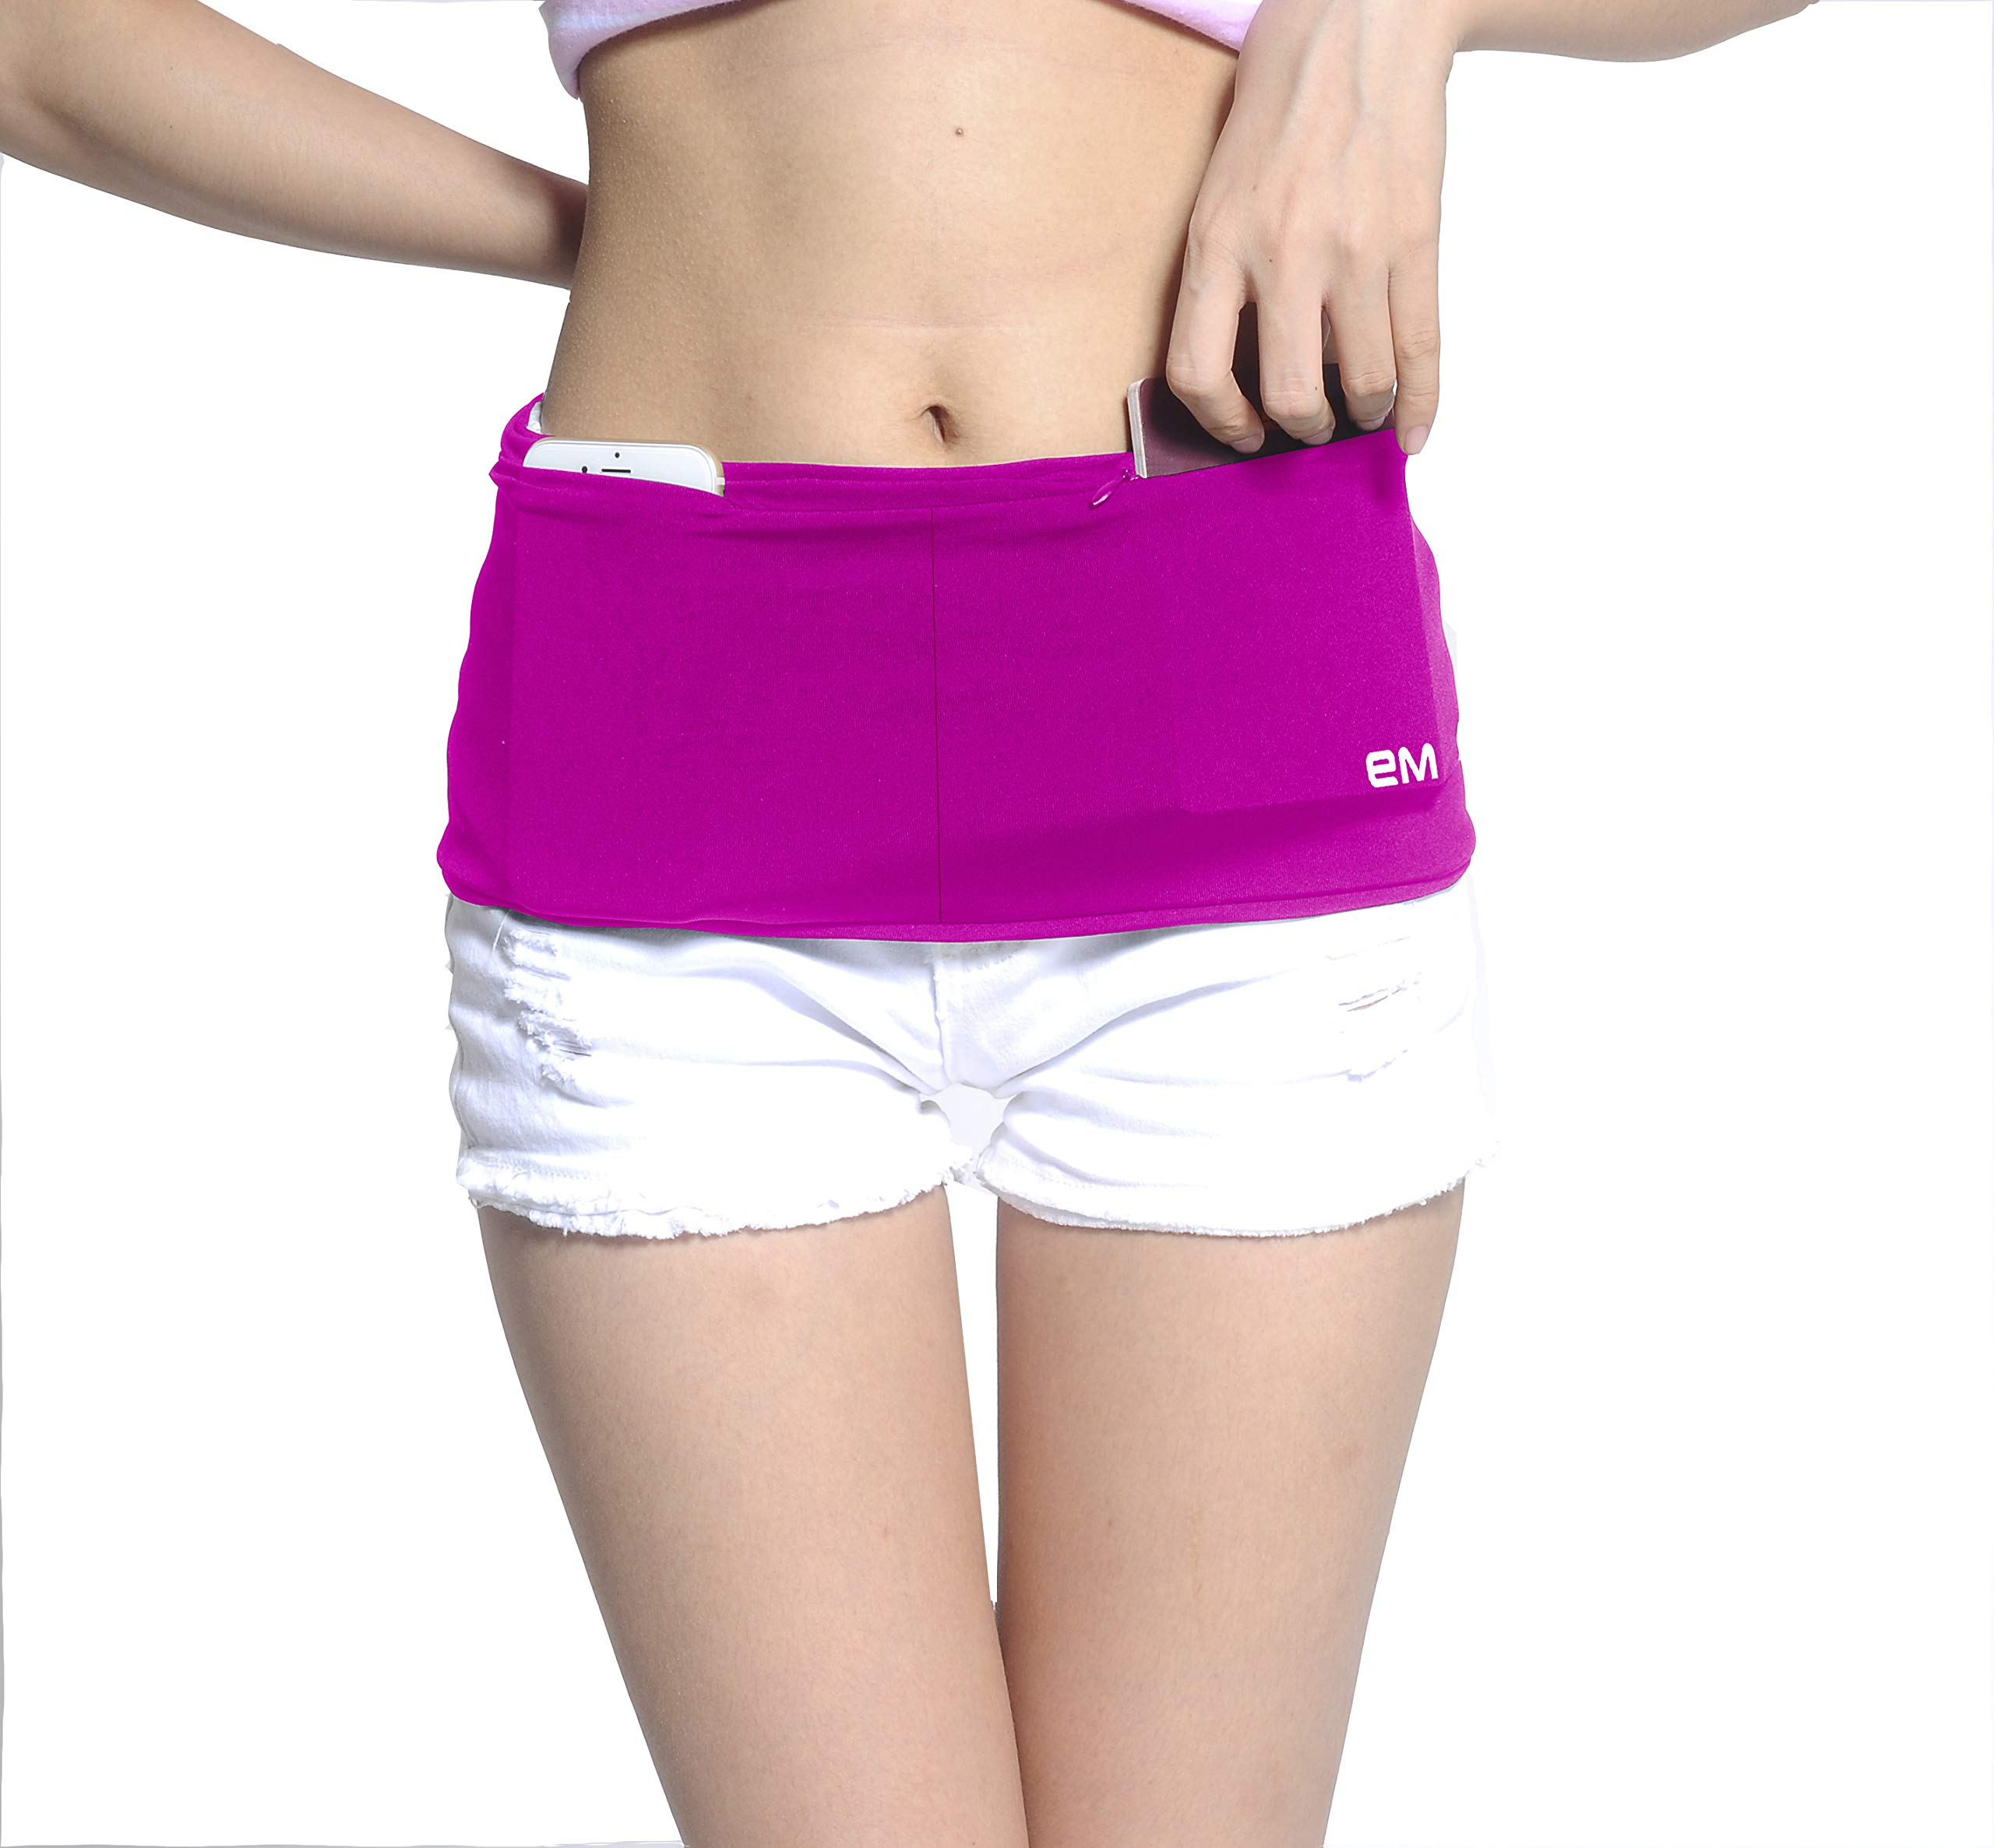 EAZYMATE Fashion Running Belt - Travel Money Belt with Zipper Pockets Fit All Smartphones and Passport Rose Red - M by EAZYMATE